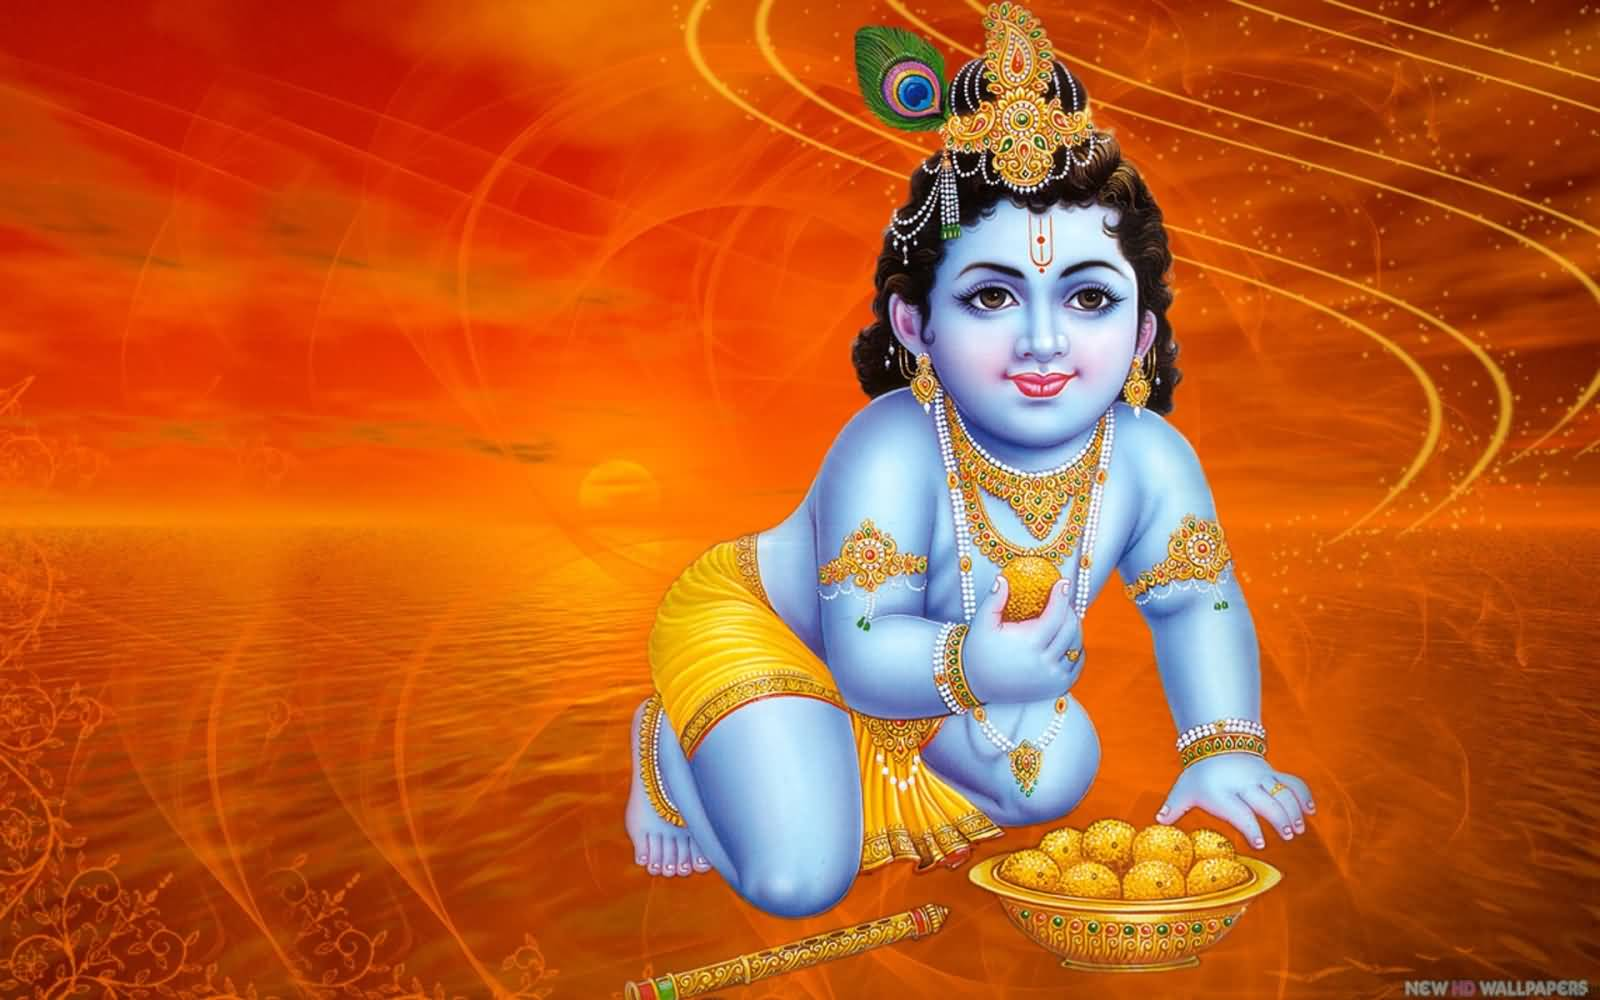 cute bal krishna happy krishna janmashtami wishes wallpaper